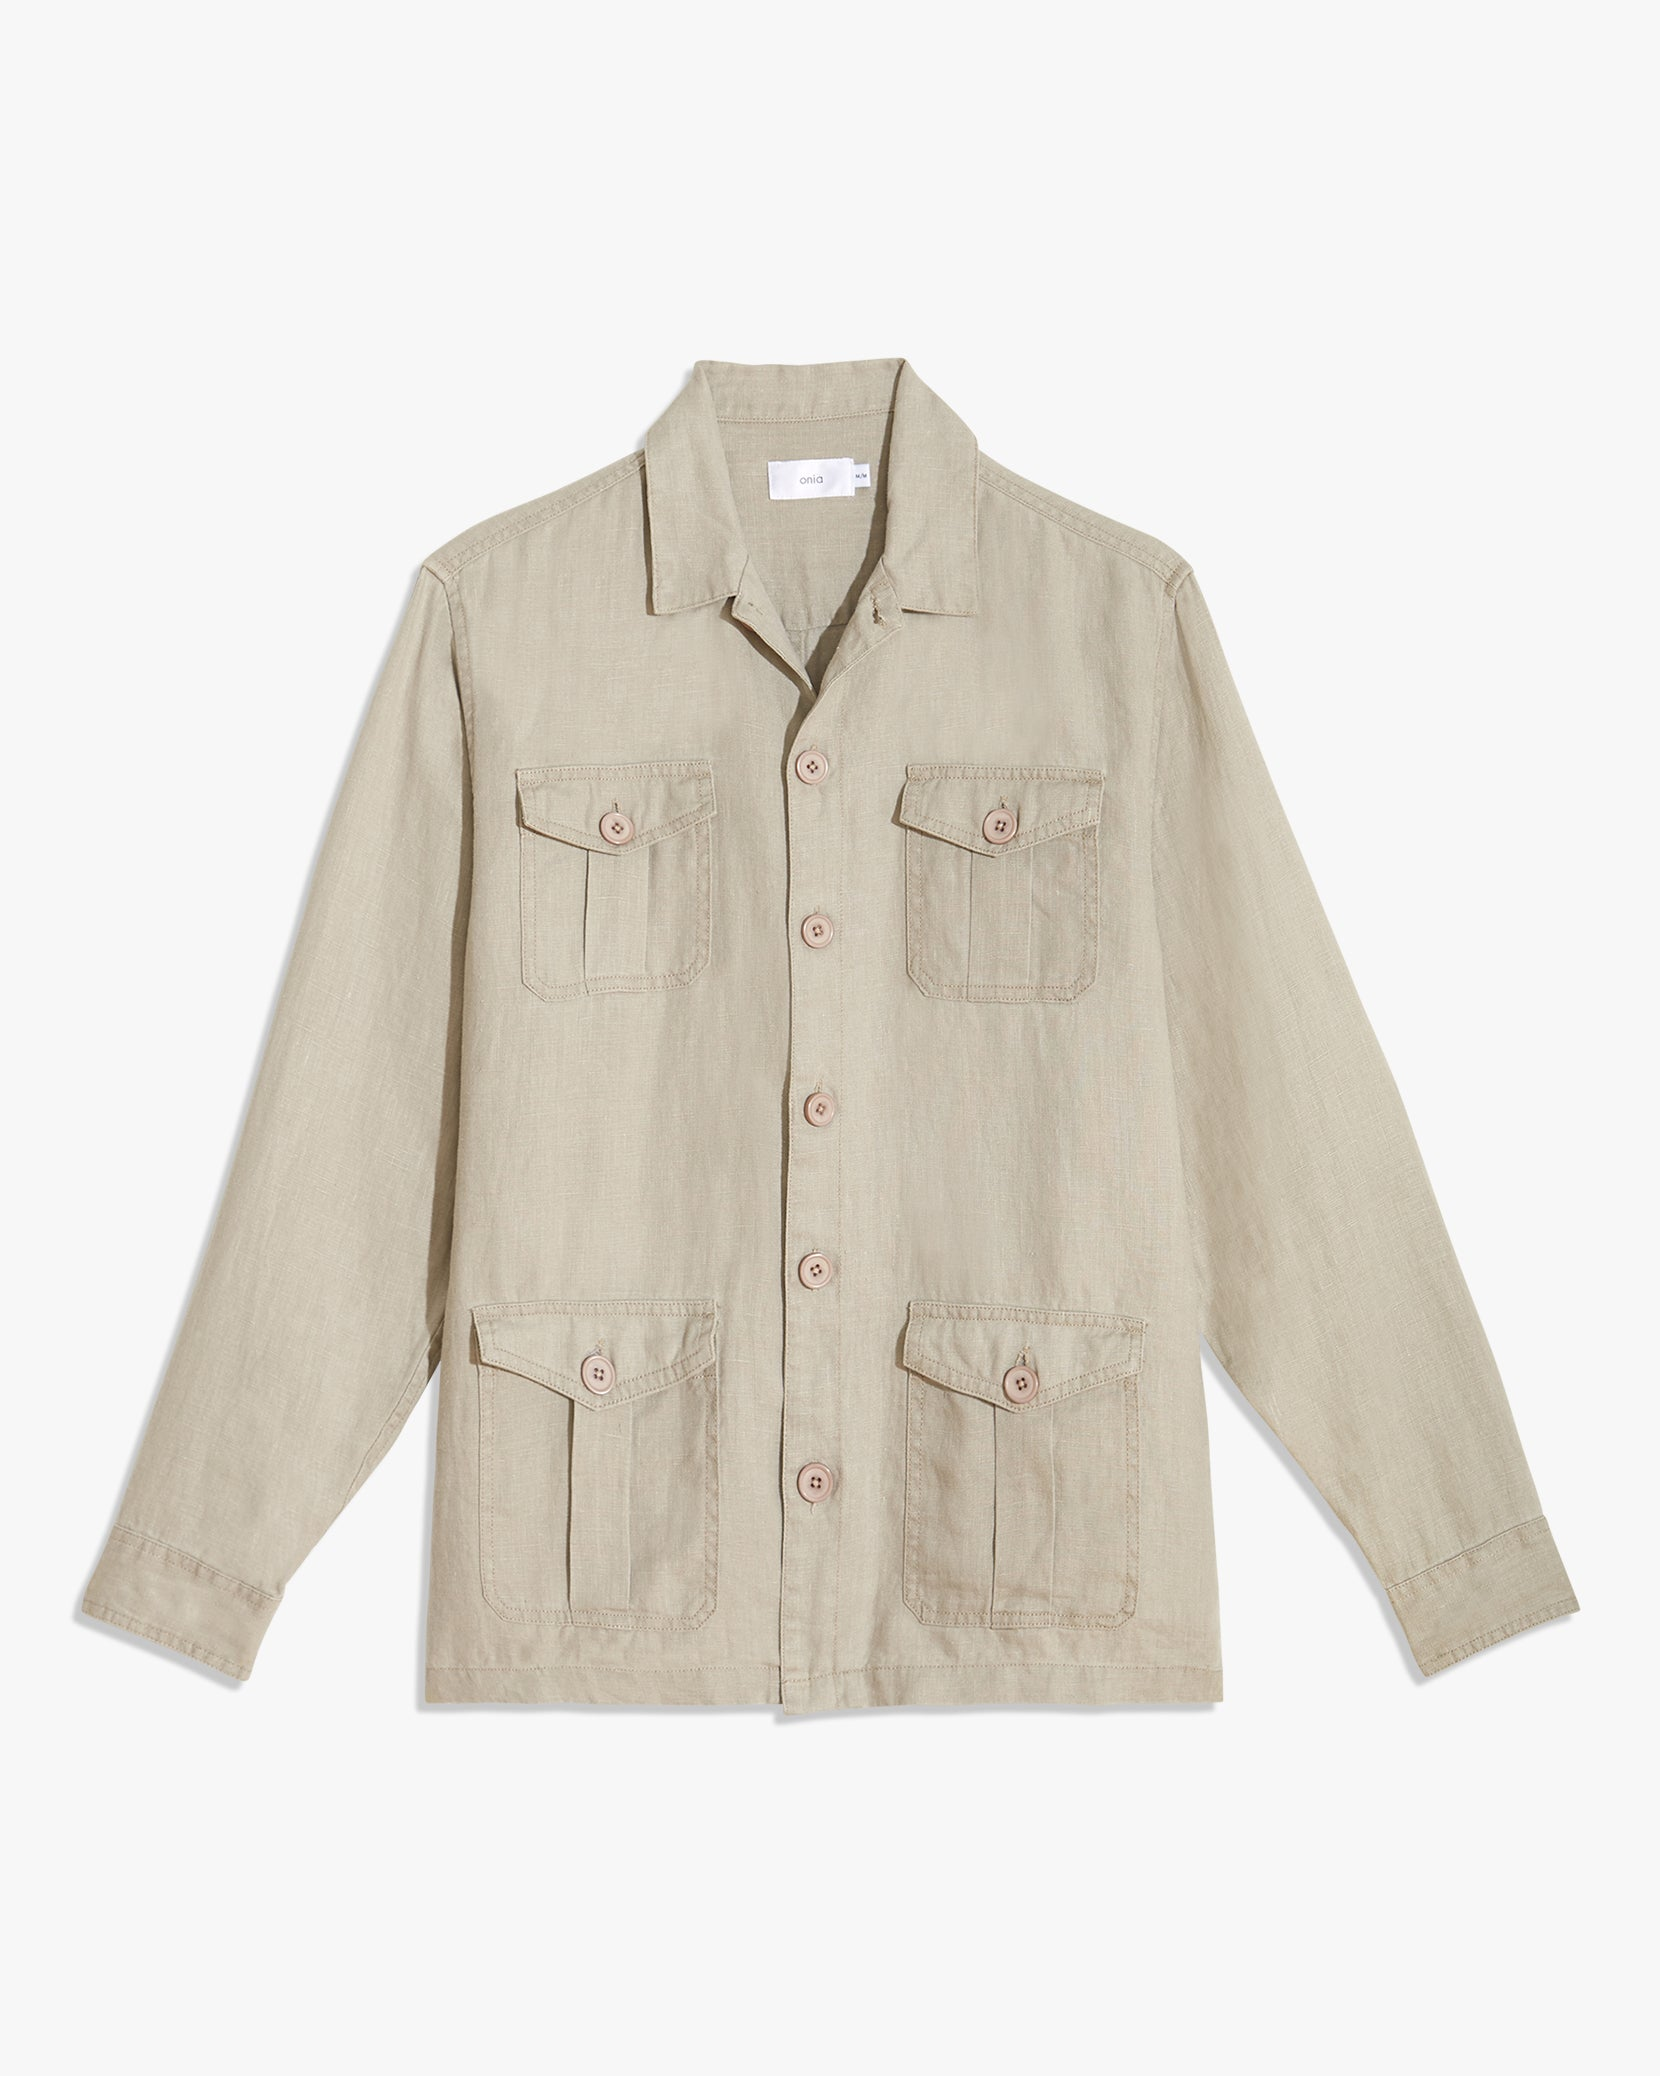 Linen Safari Jacket in Dune - 1 - Onia